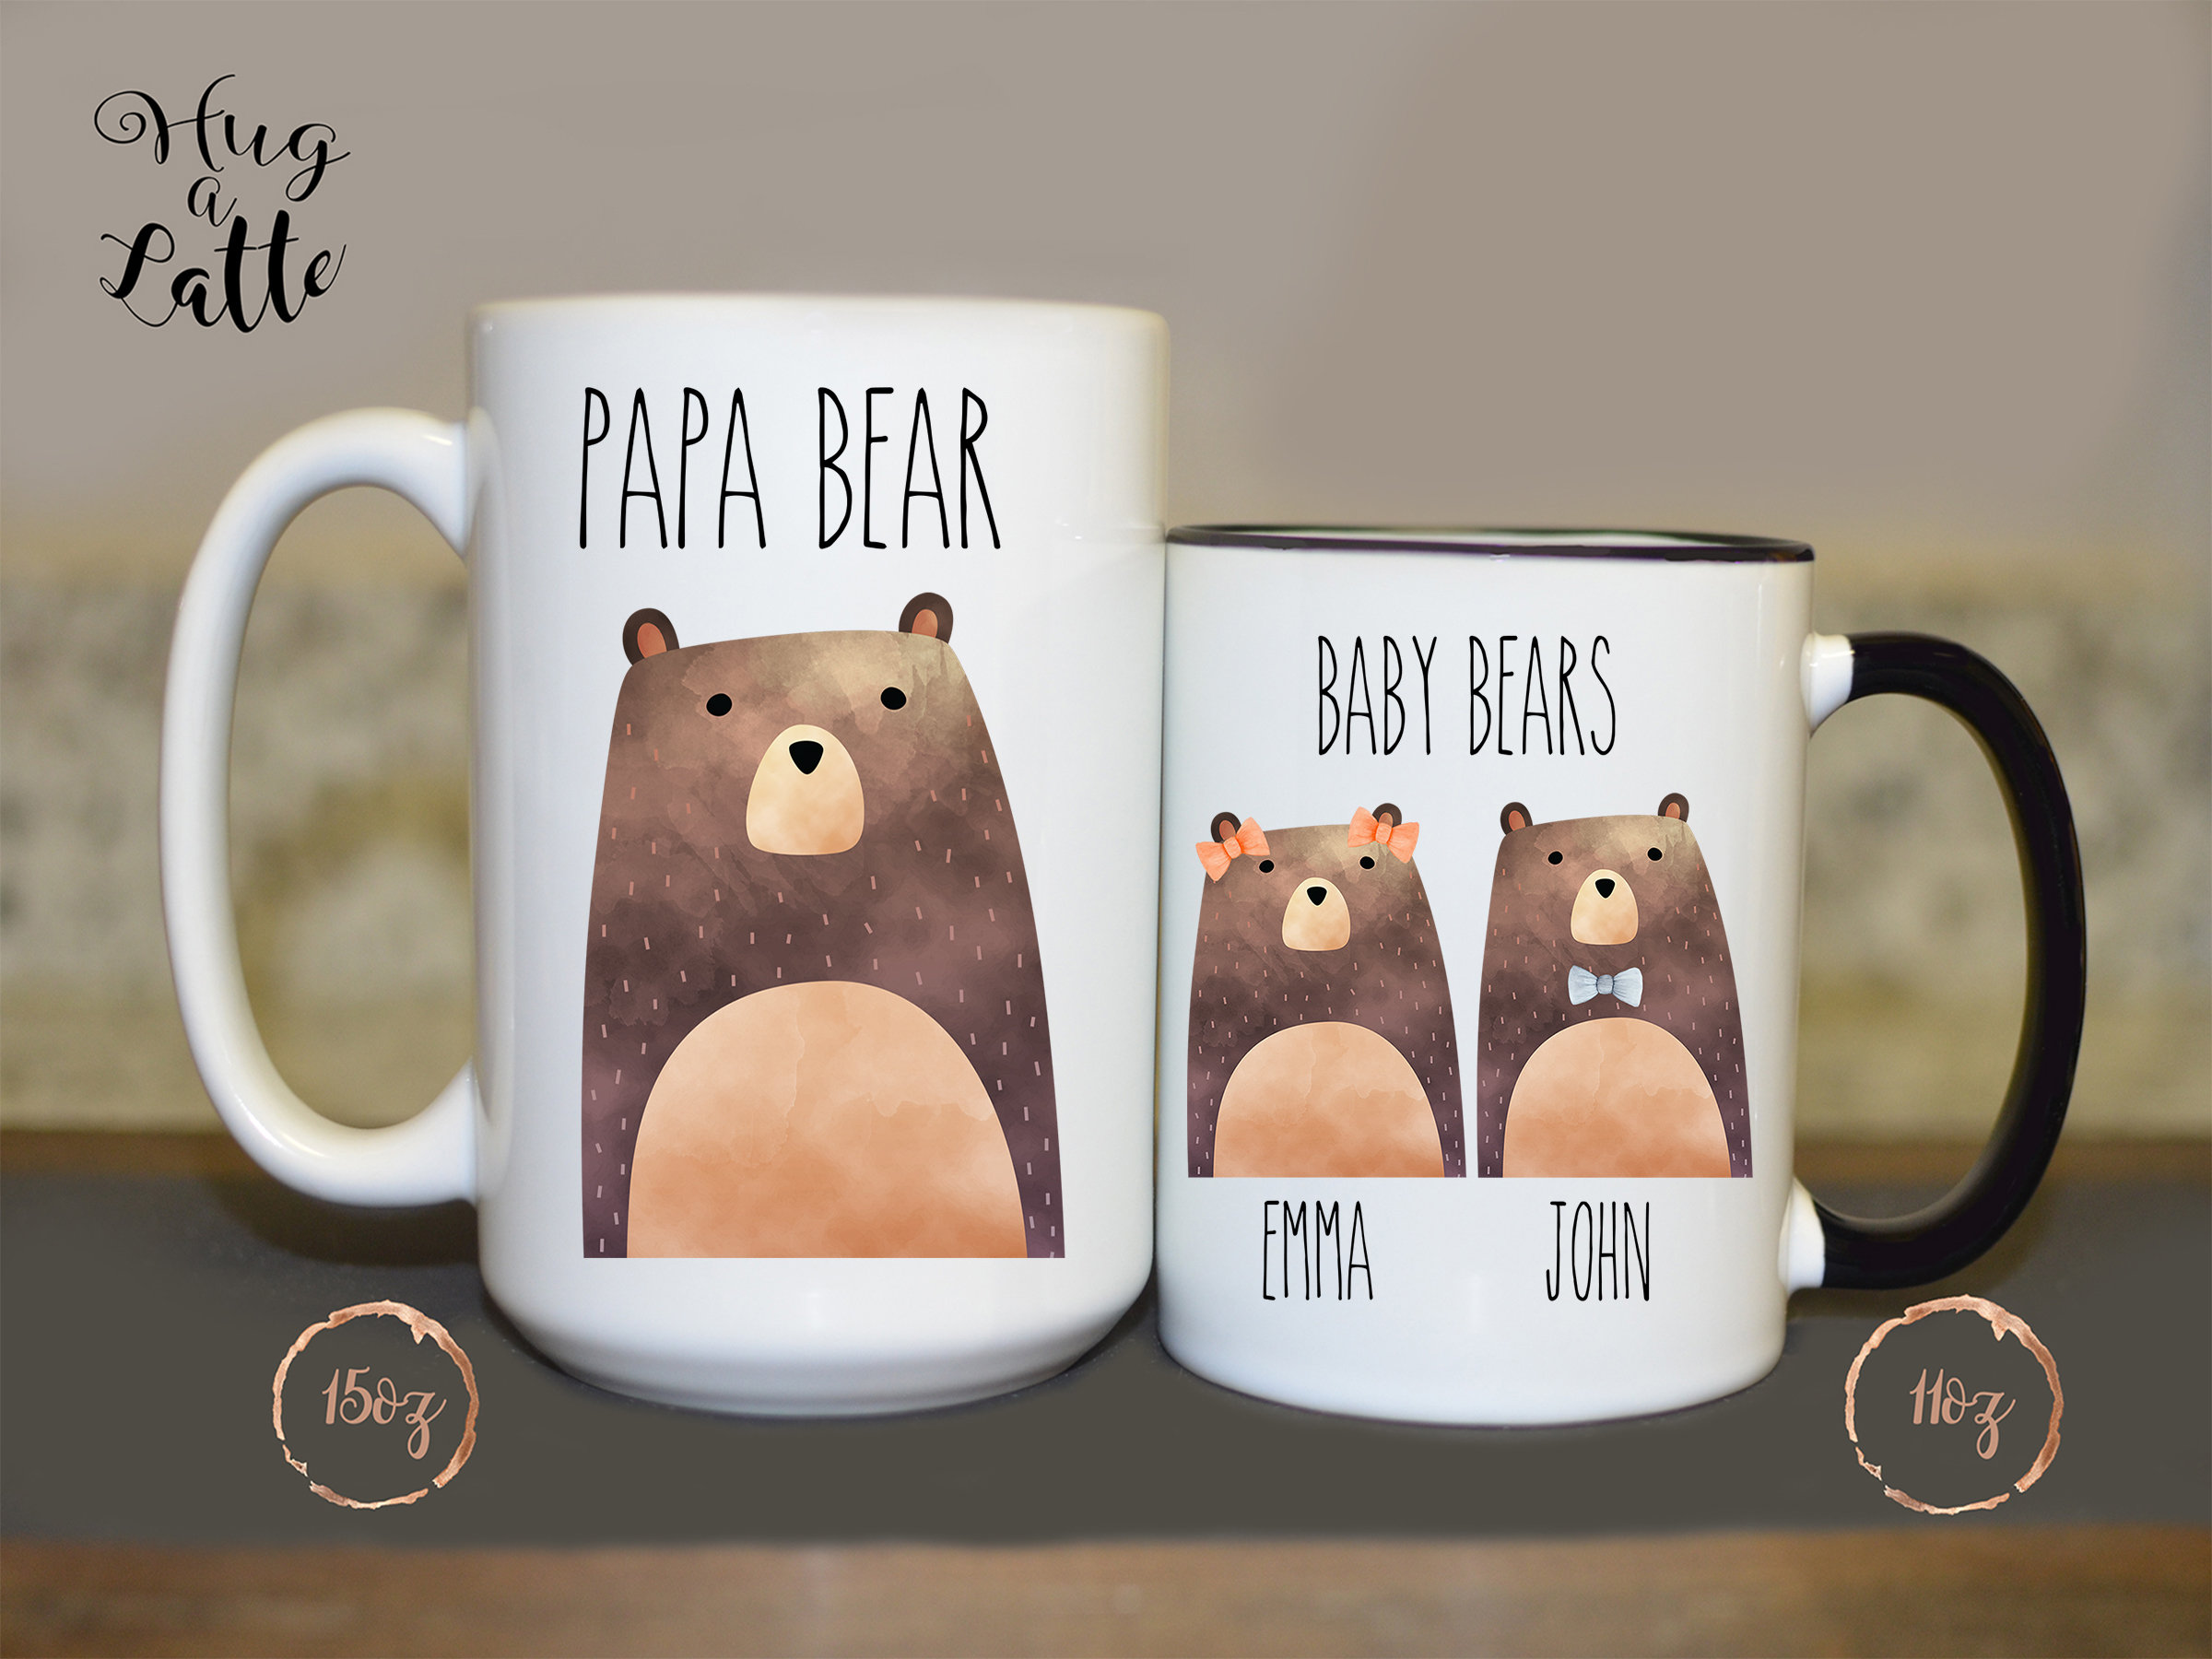 Papa Bear Mug Fathers Day Gift Personalized Father Gift Dad Birthday Present